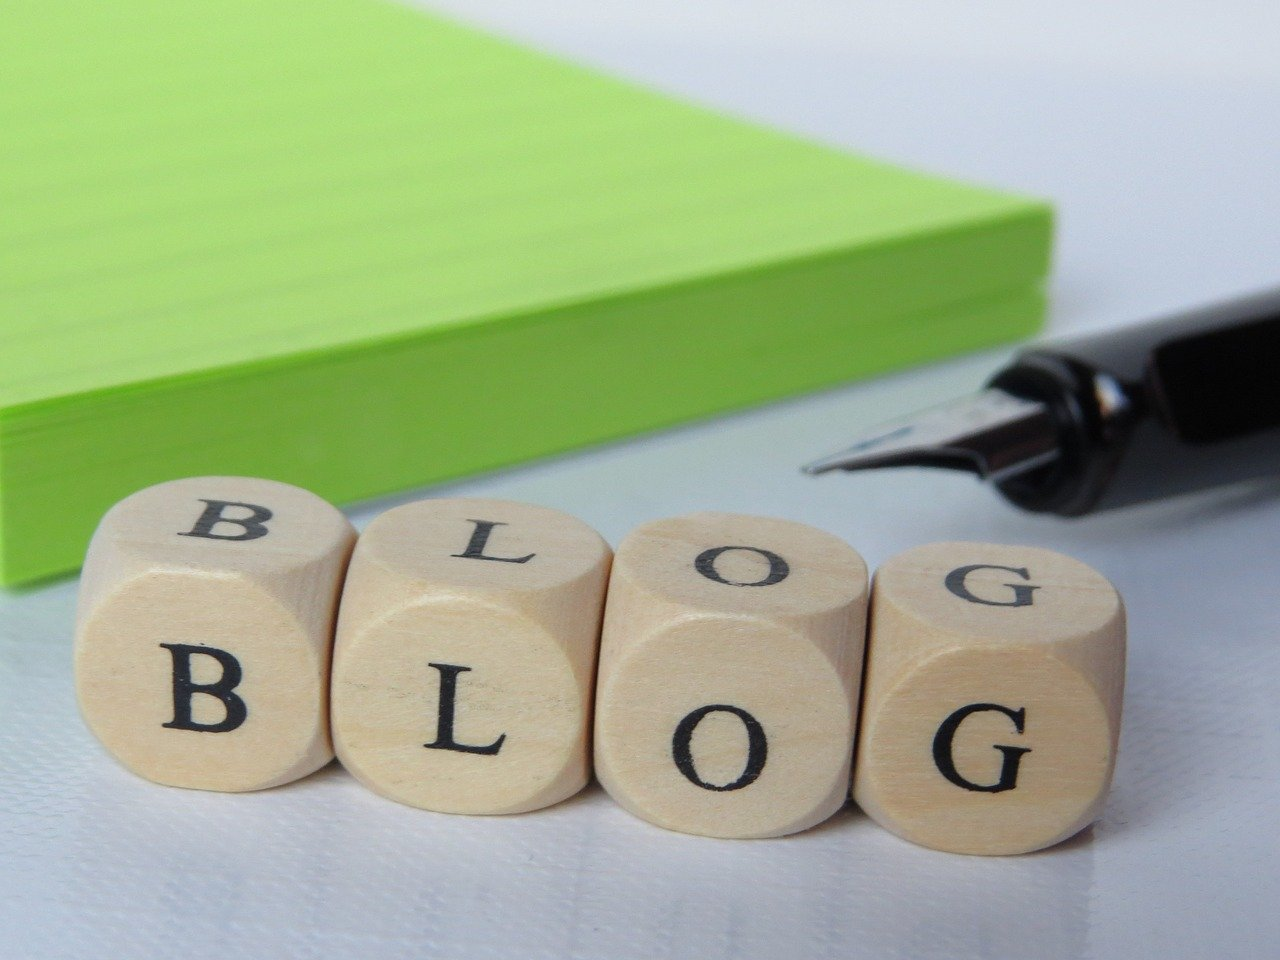 10 Coolest Content Marketing and Advertising Ideas for a Blog